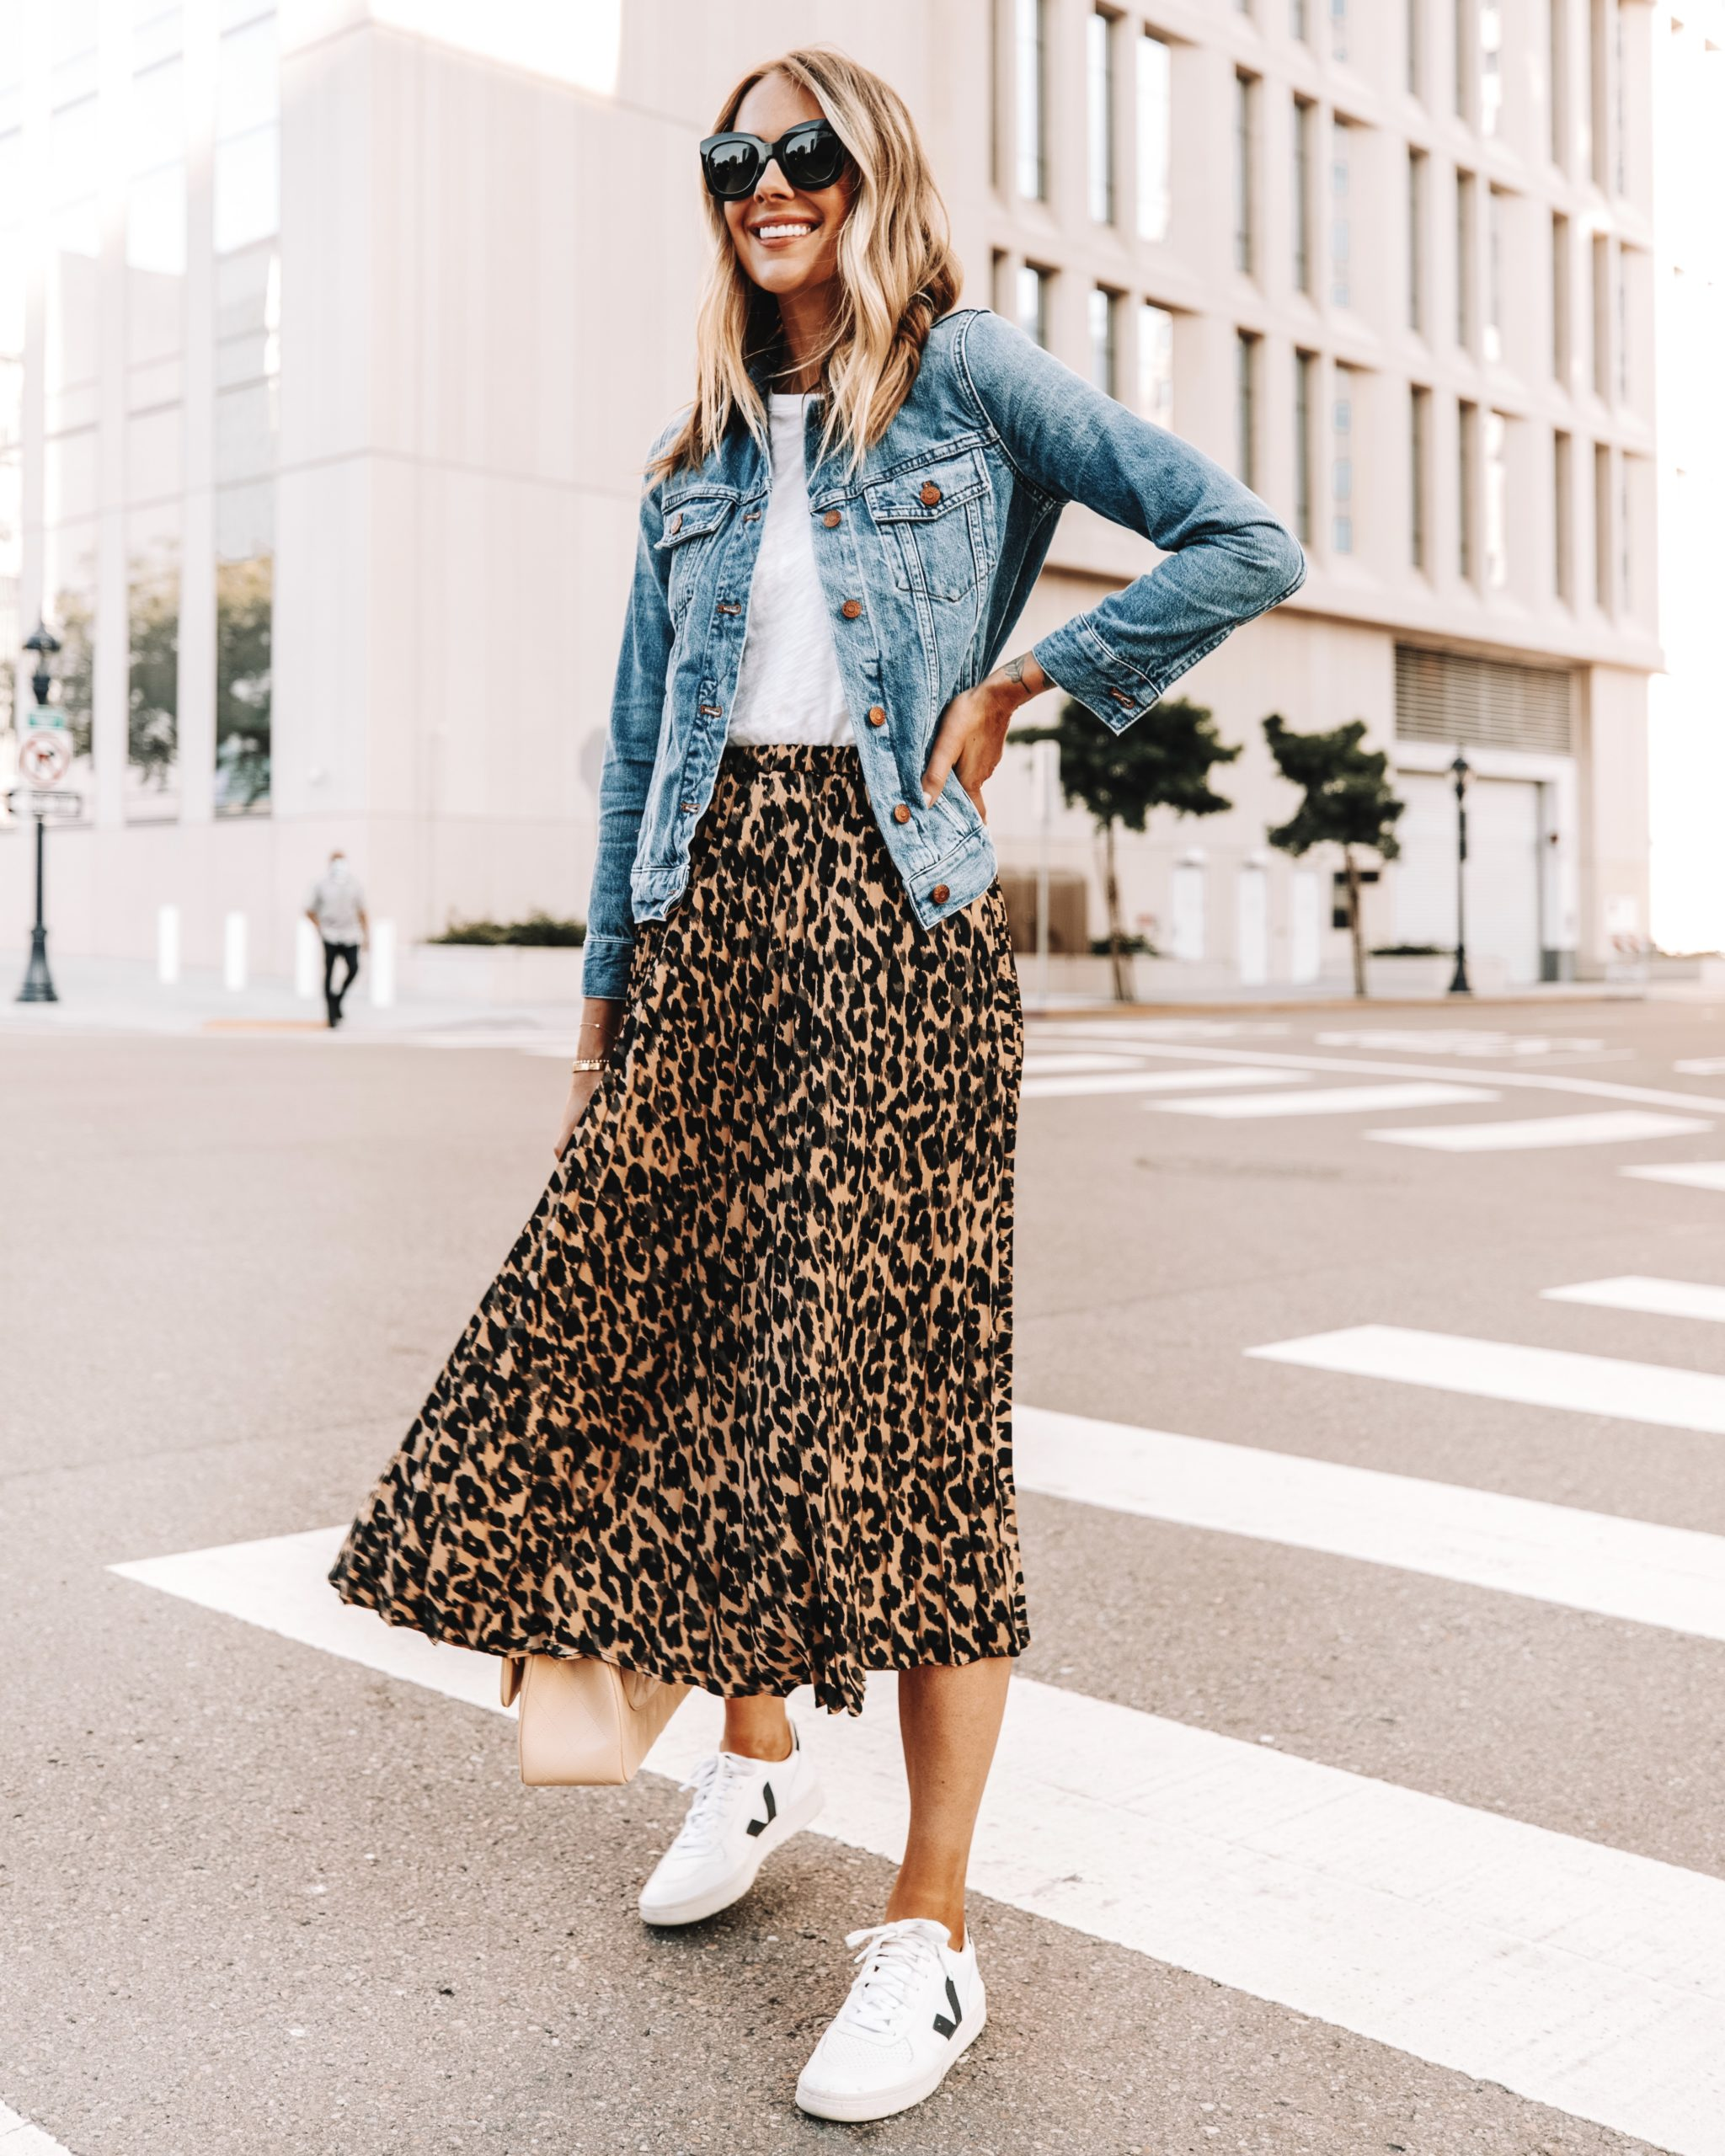 Fashion Jackson Wearing Denim Jacket White Tshirt Leopard Midi Skirt Veja Sneakers 1